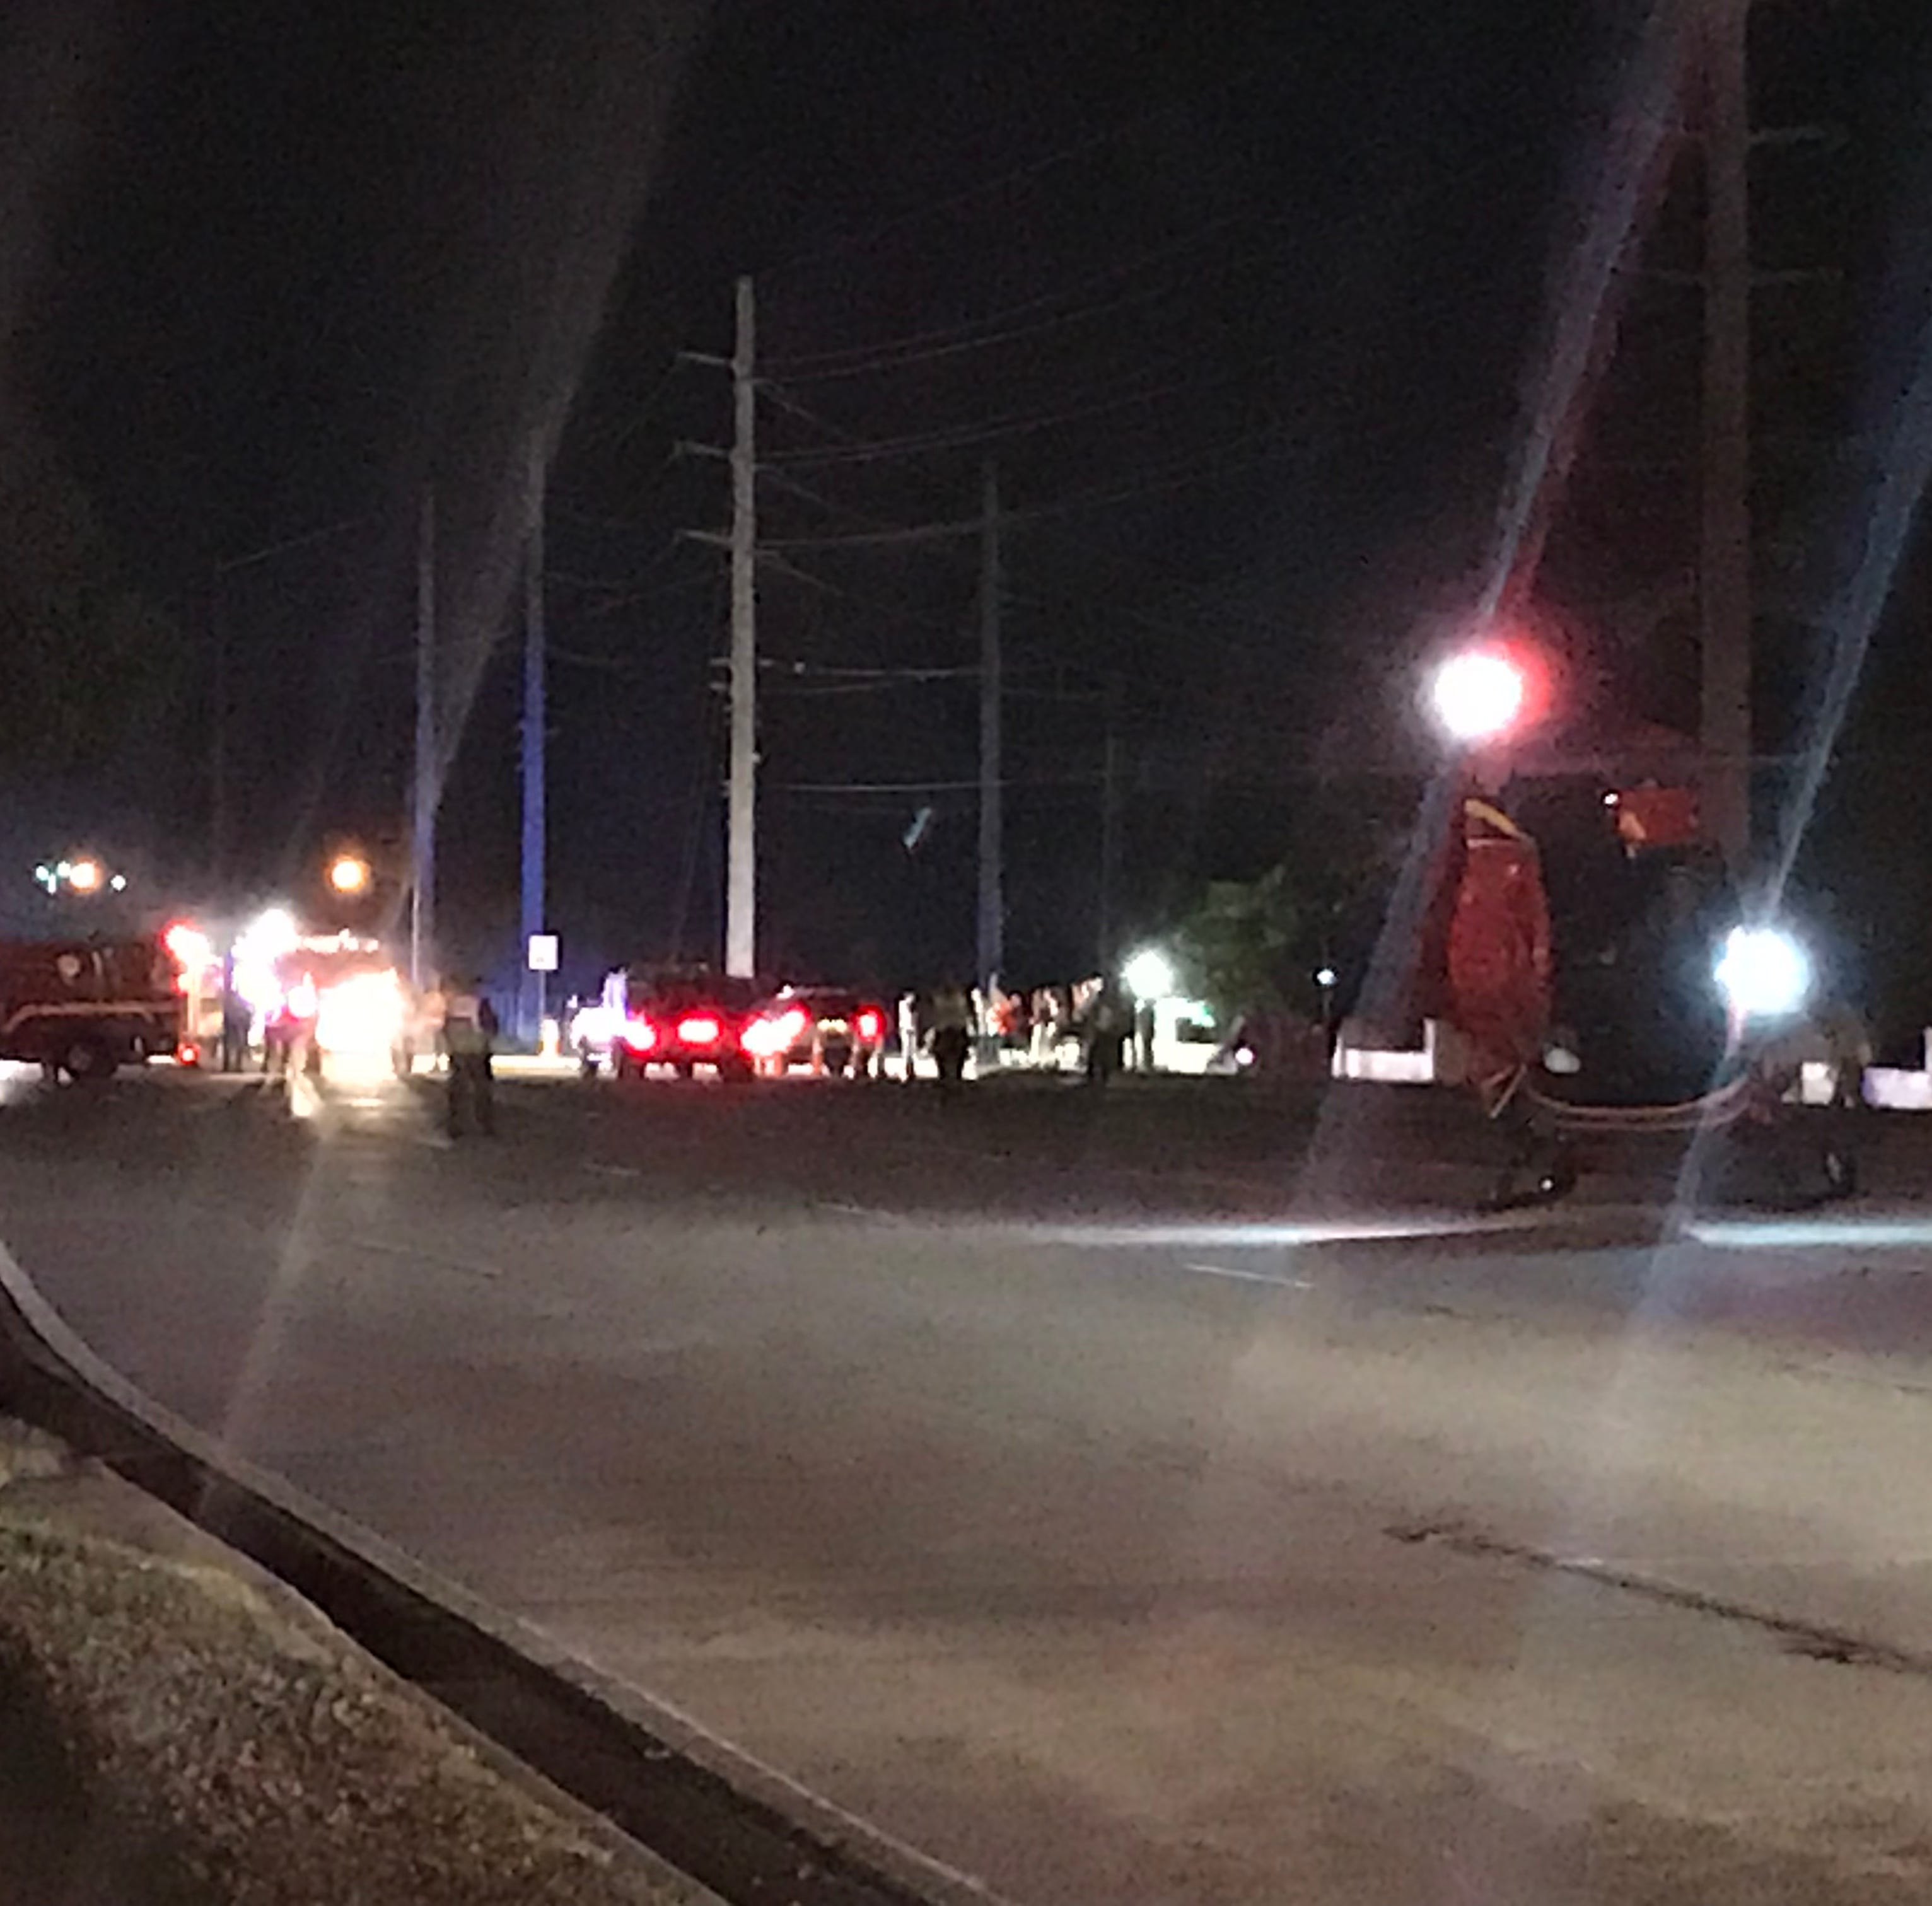 Vehicle strikes two children on South Patrick Drive